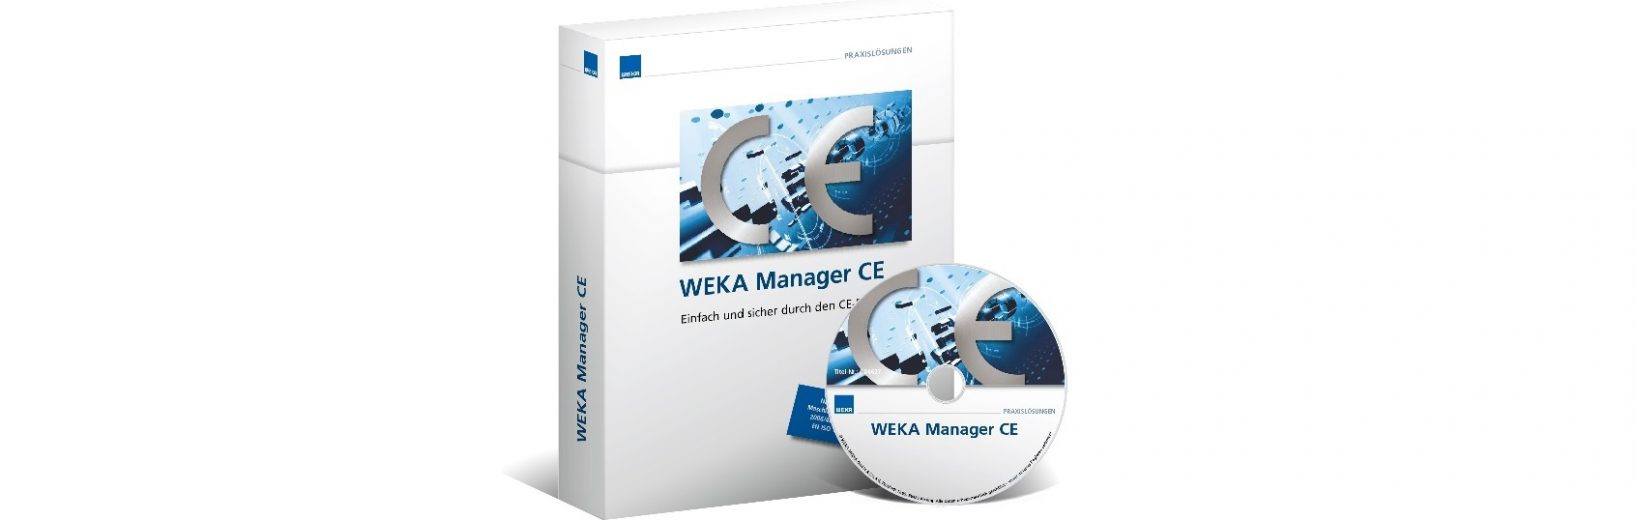 WEKA Manager CE 3.0